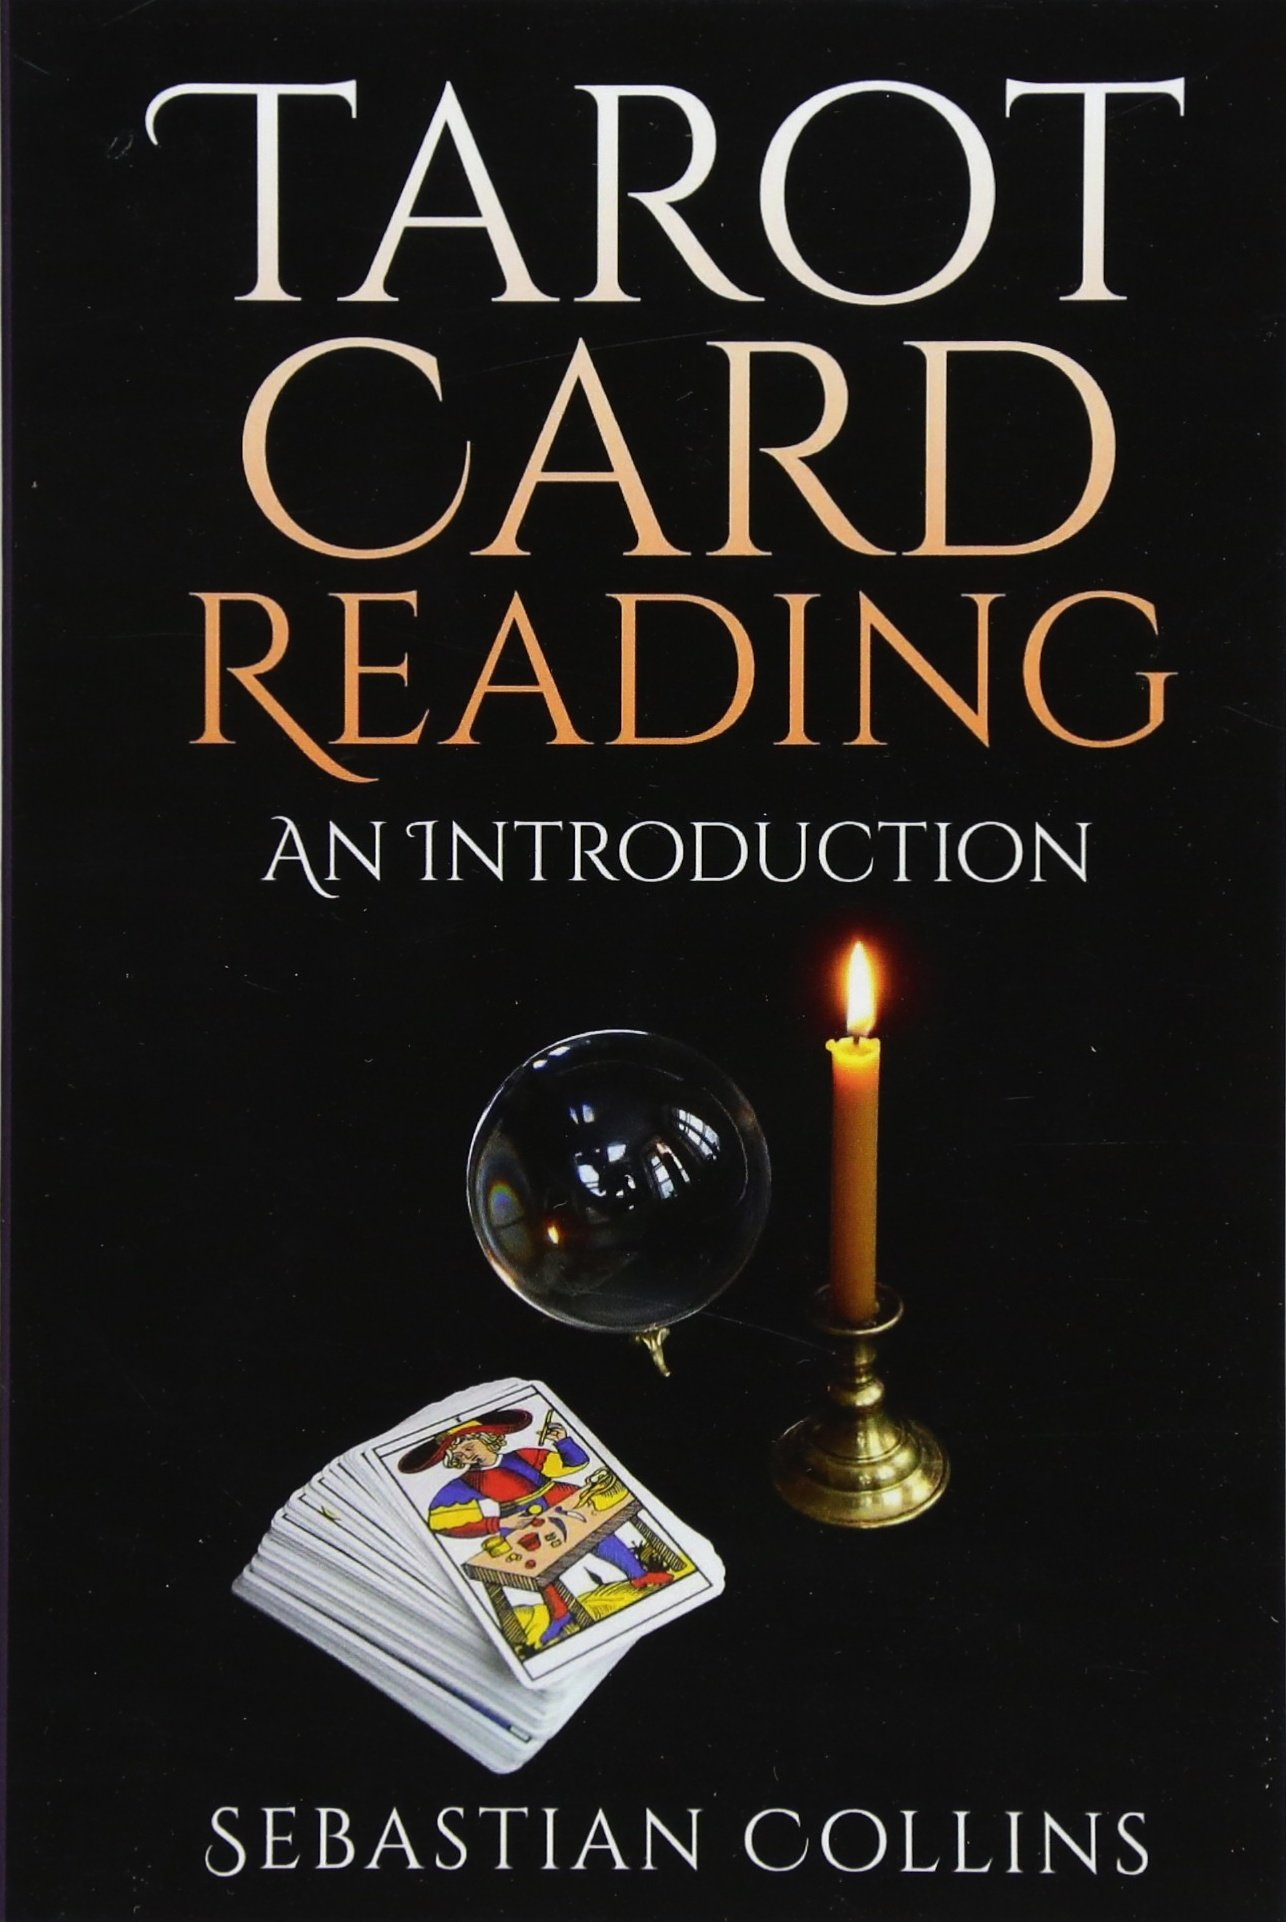 Tarot Card Reading: An Introduction: Beginners Guide Learning, The Ultimate Secret Of Professional Fortune Telling, Beginners Guide, Reading Deck, ... True, Learn (Occult How To Guides) (Volume 1) pdf